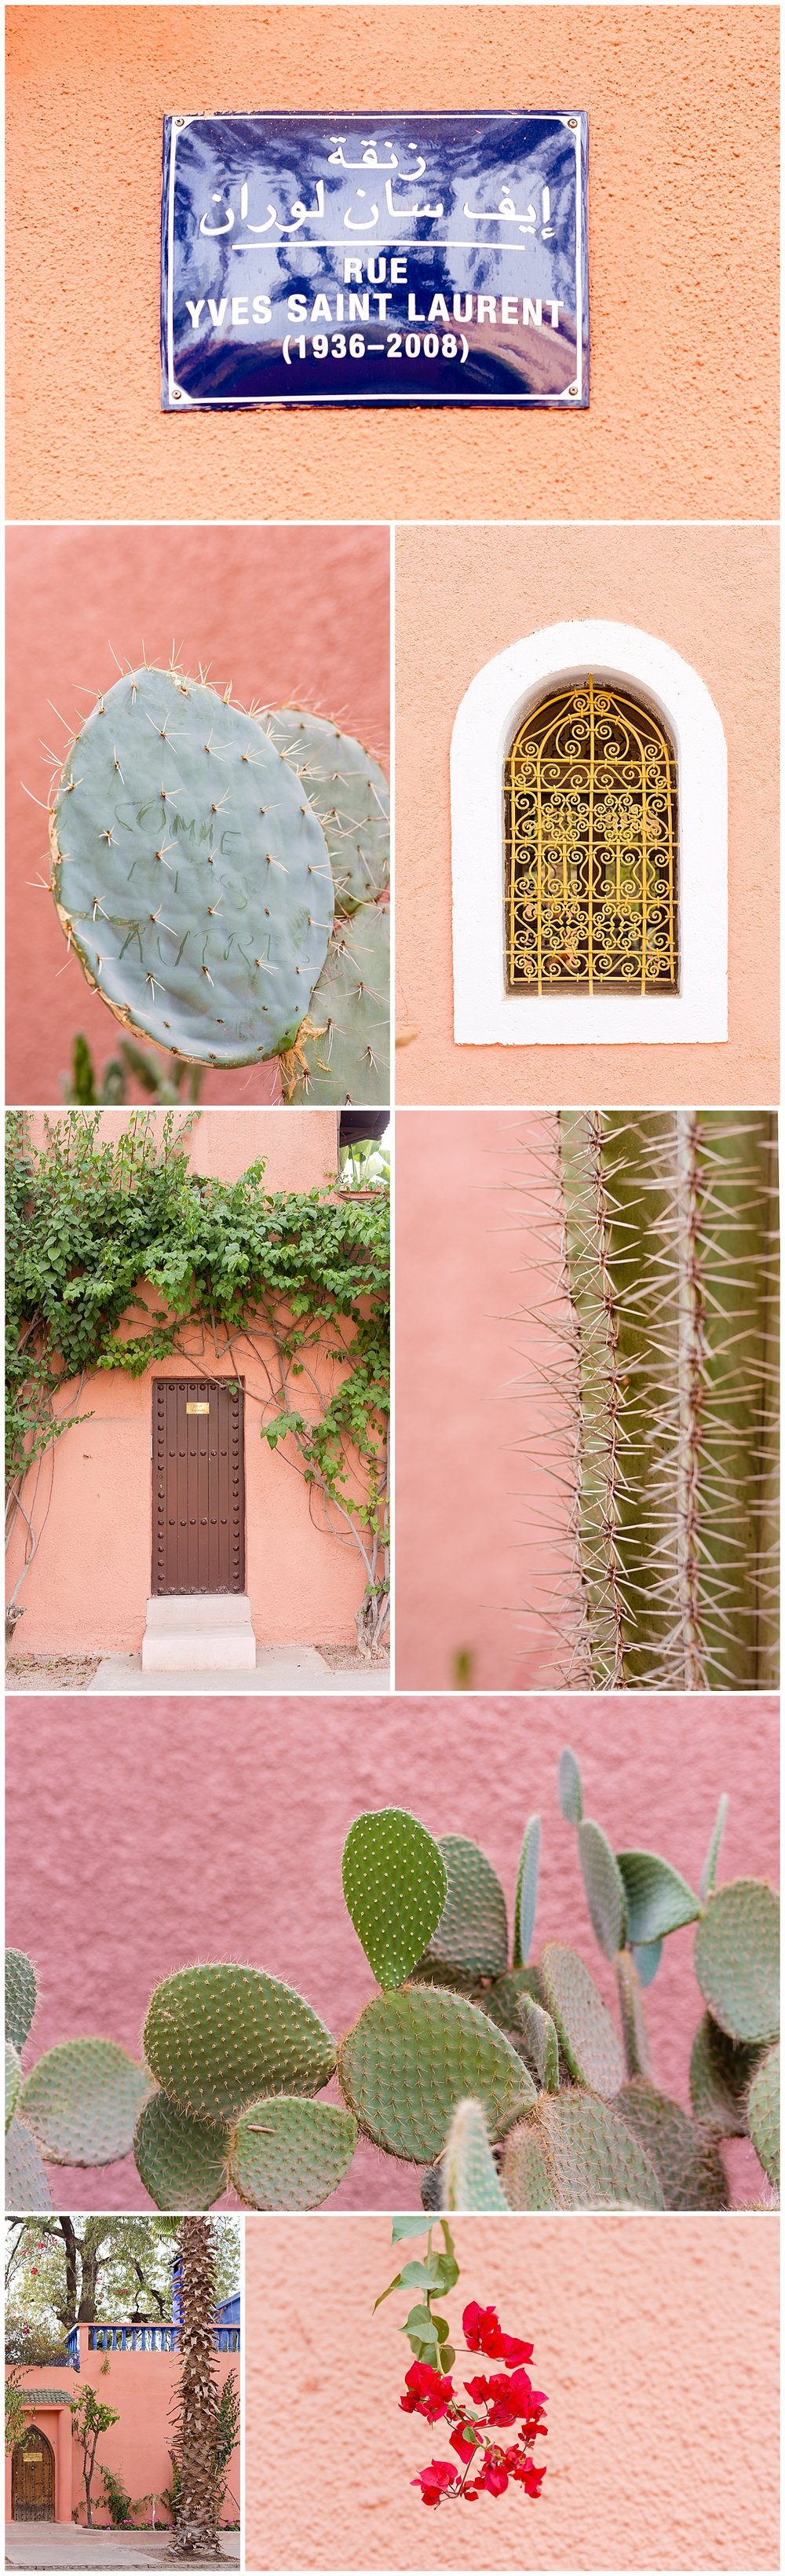 Rue Yves Saint Laurent in Marrakech, Morocco cacti and doors